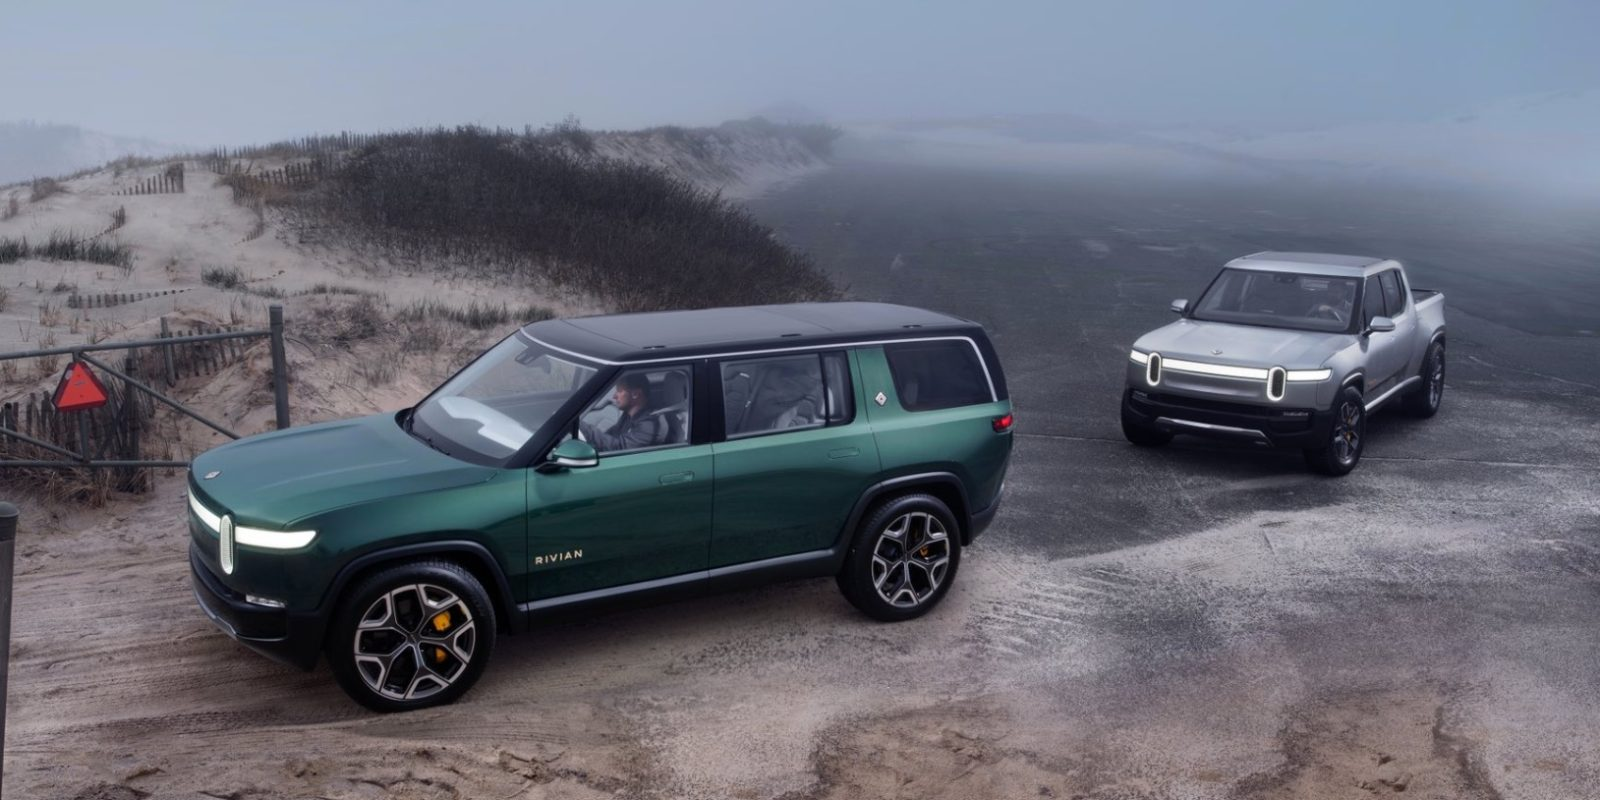 Craigslist Portland Oregon Cars Trucks Owner >> Rivian R1t Electric Pickup Truck Owners Will Be Able To